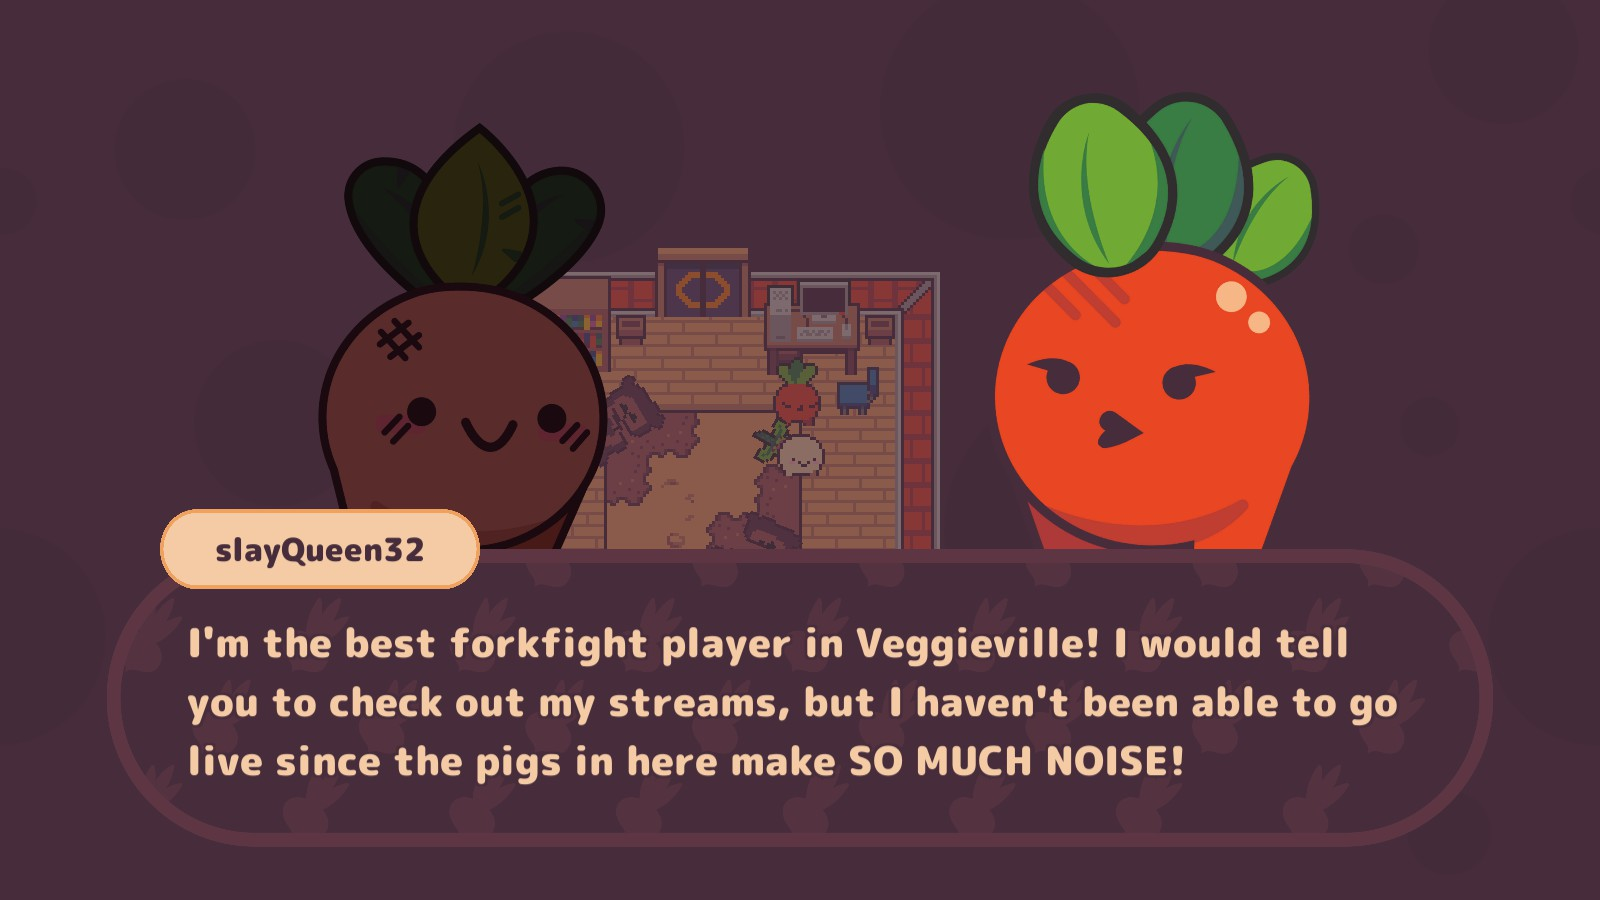 The popular streamer slayQueen32 laments about the noise of the piggies in the barn where she streams.